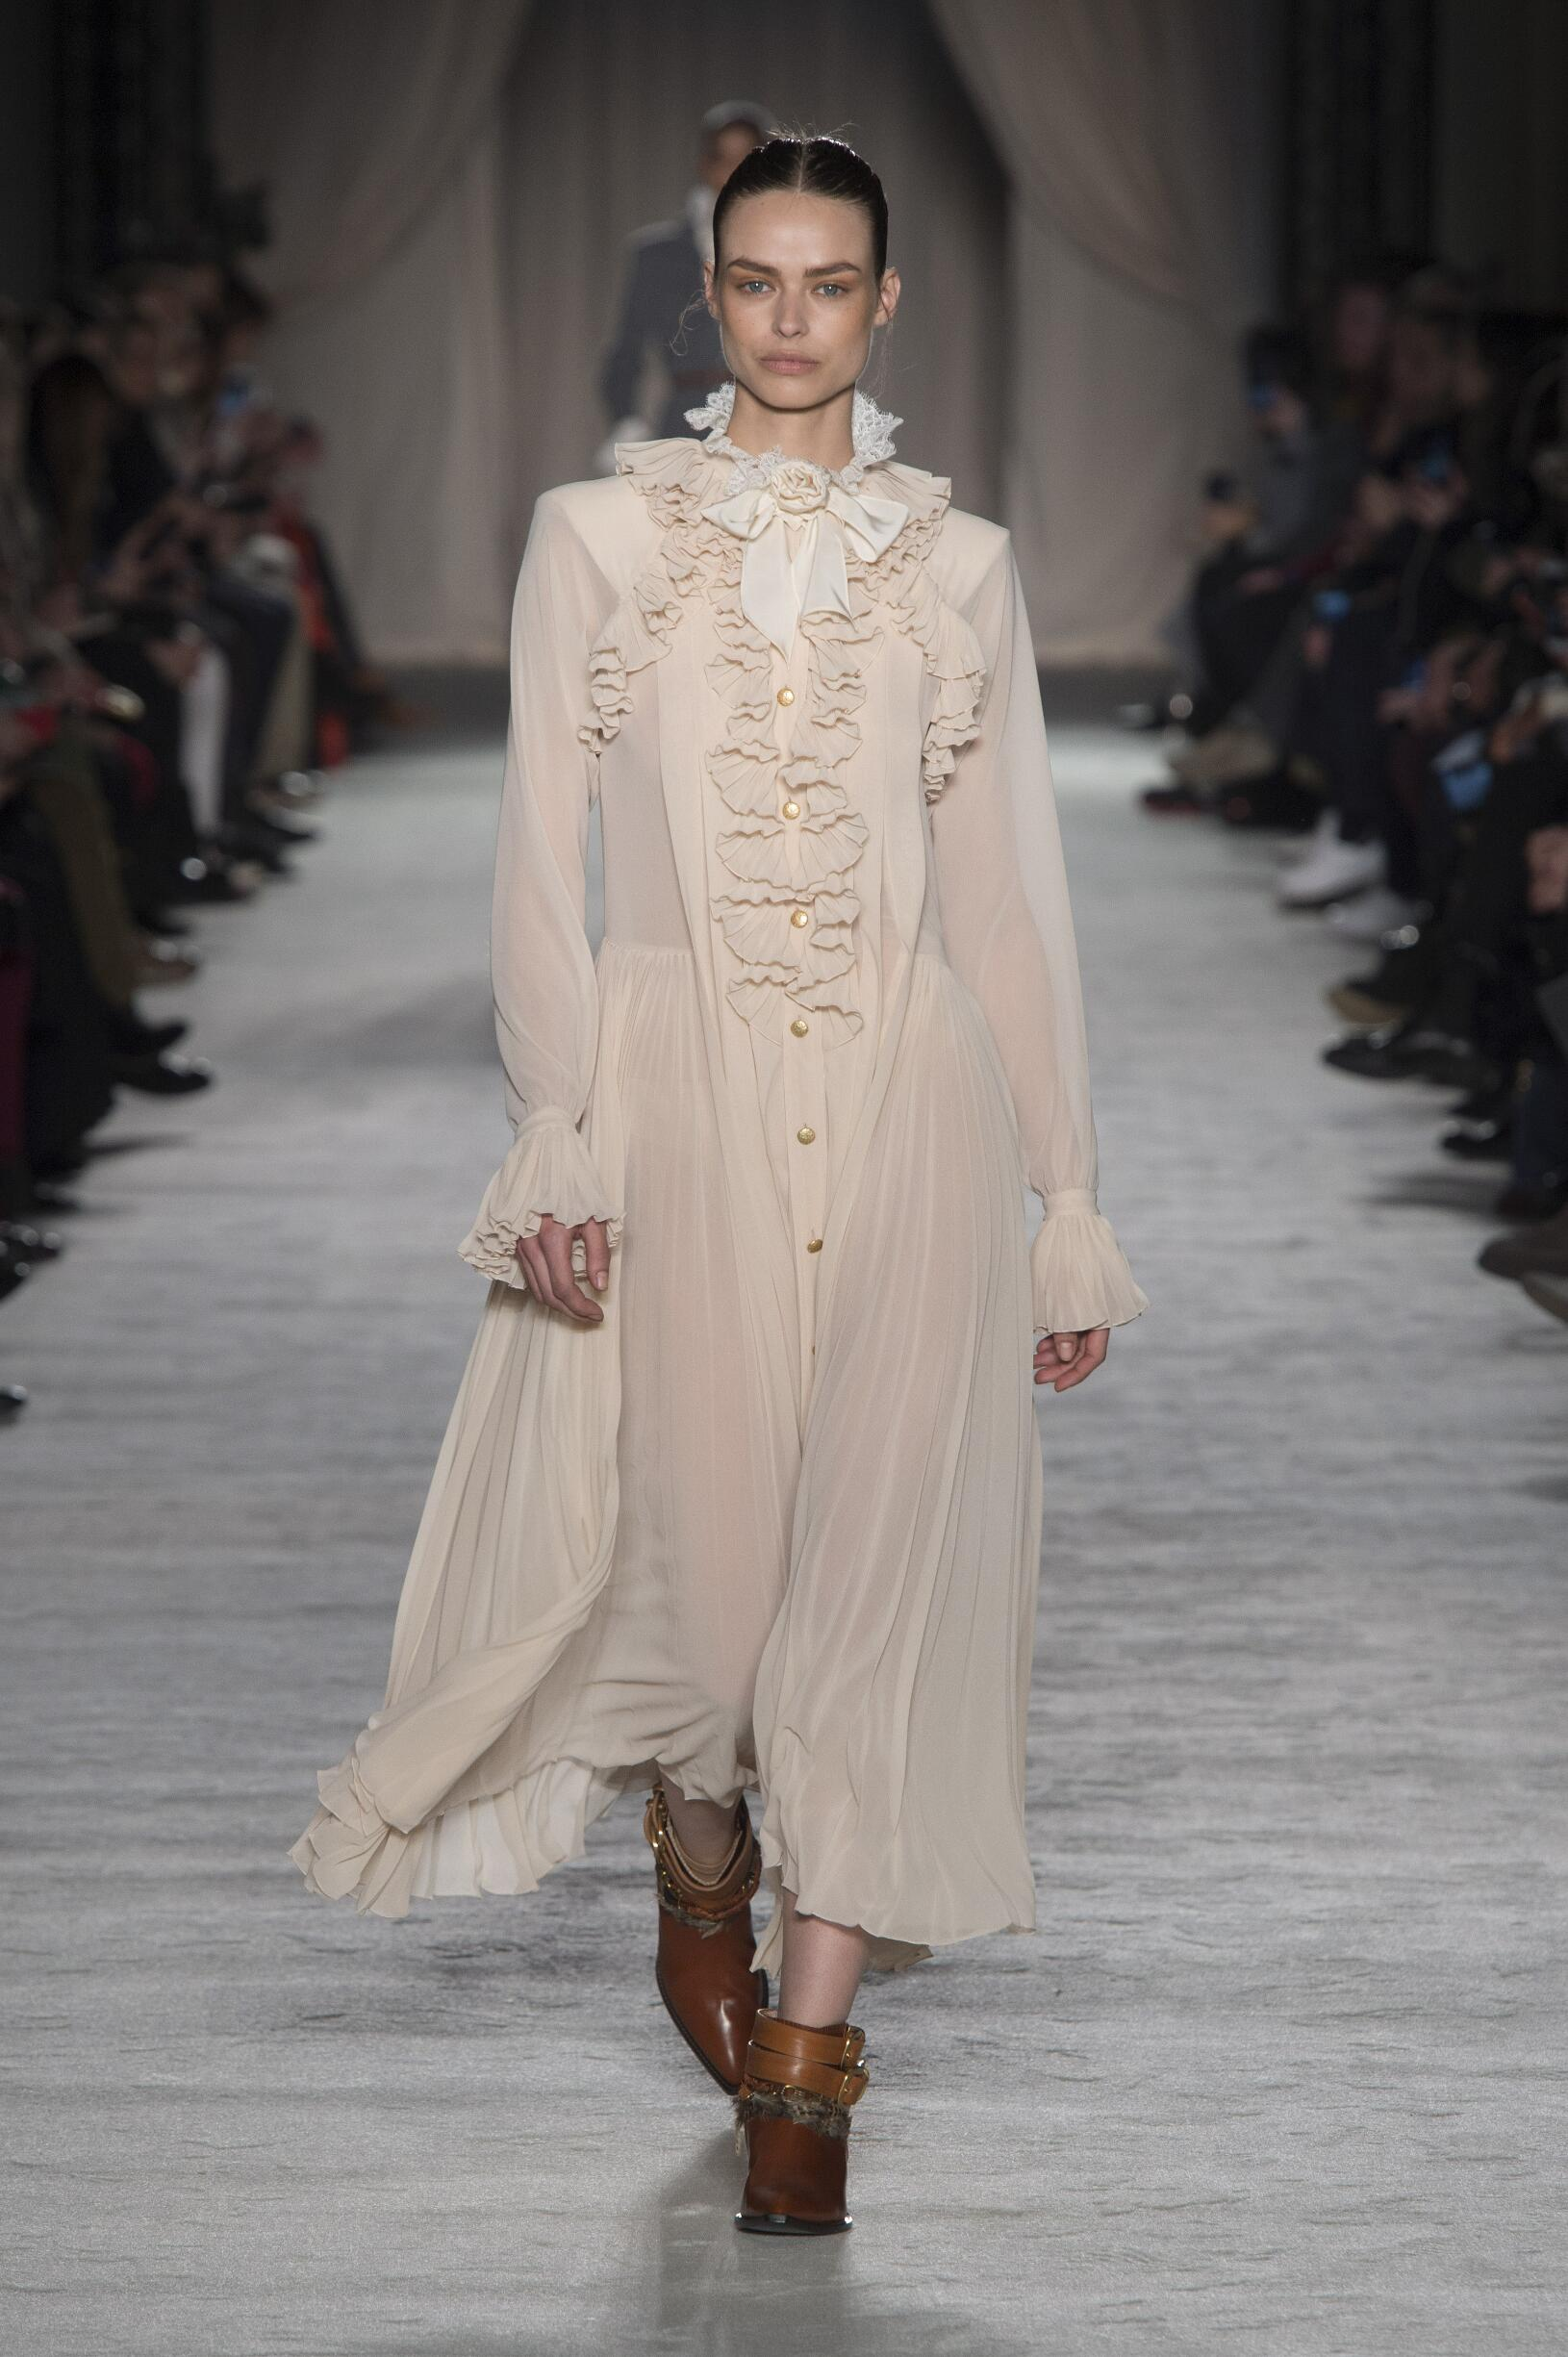 Woman FW 2018-19 Fashion Show Philosophy di Lorenzo Serafini